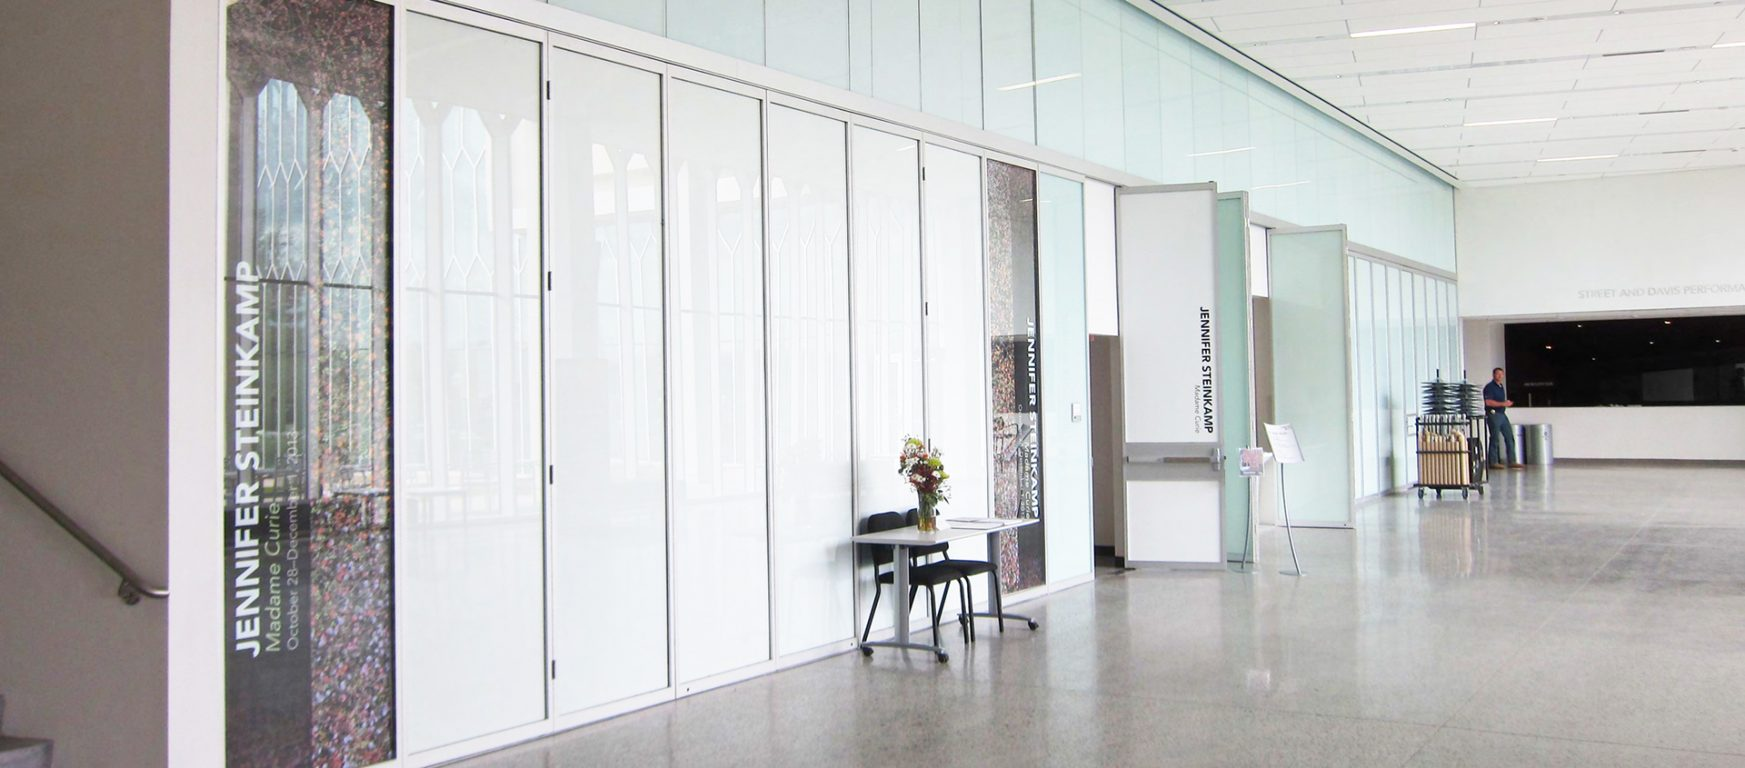 PK-30 Variofold bifolding glass doors & PK-30 Operable Walls by ModernfoldStyles